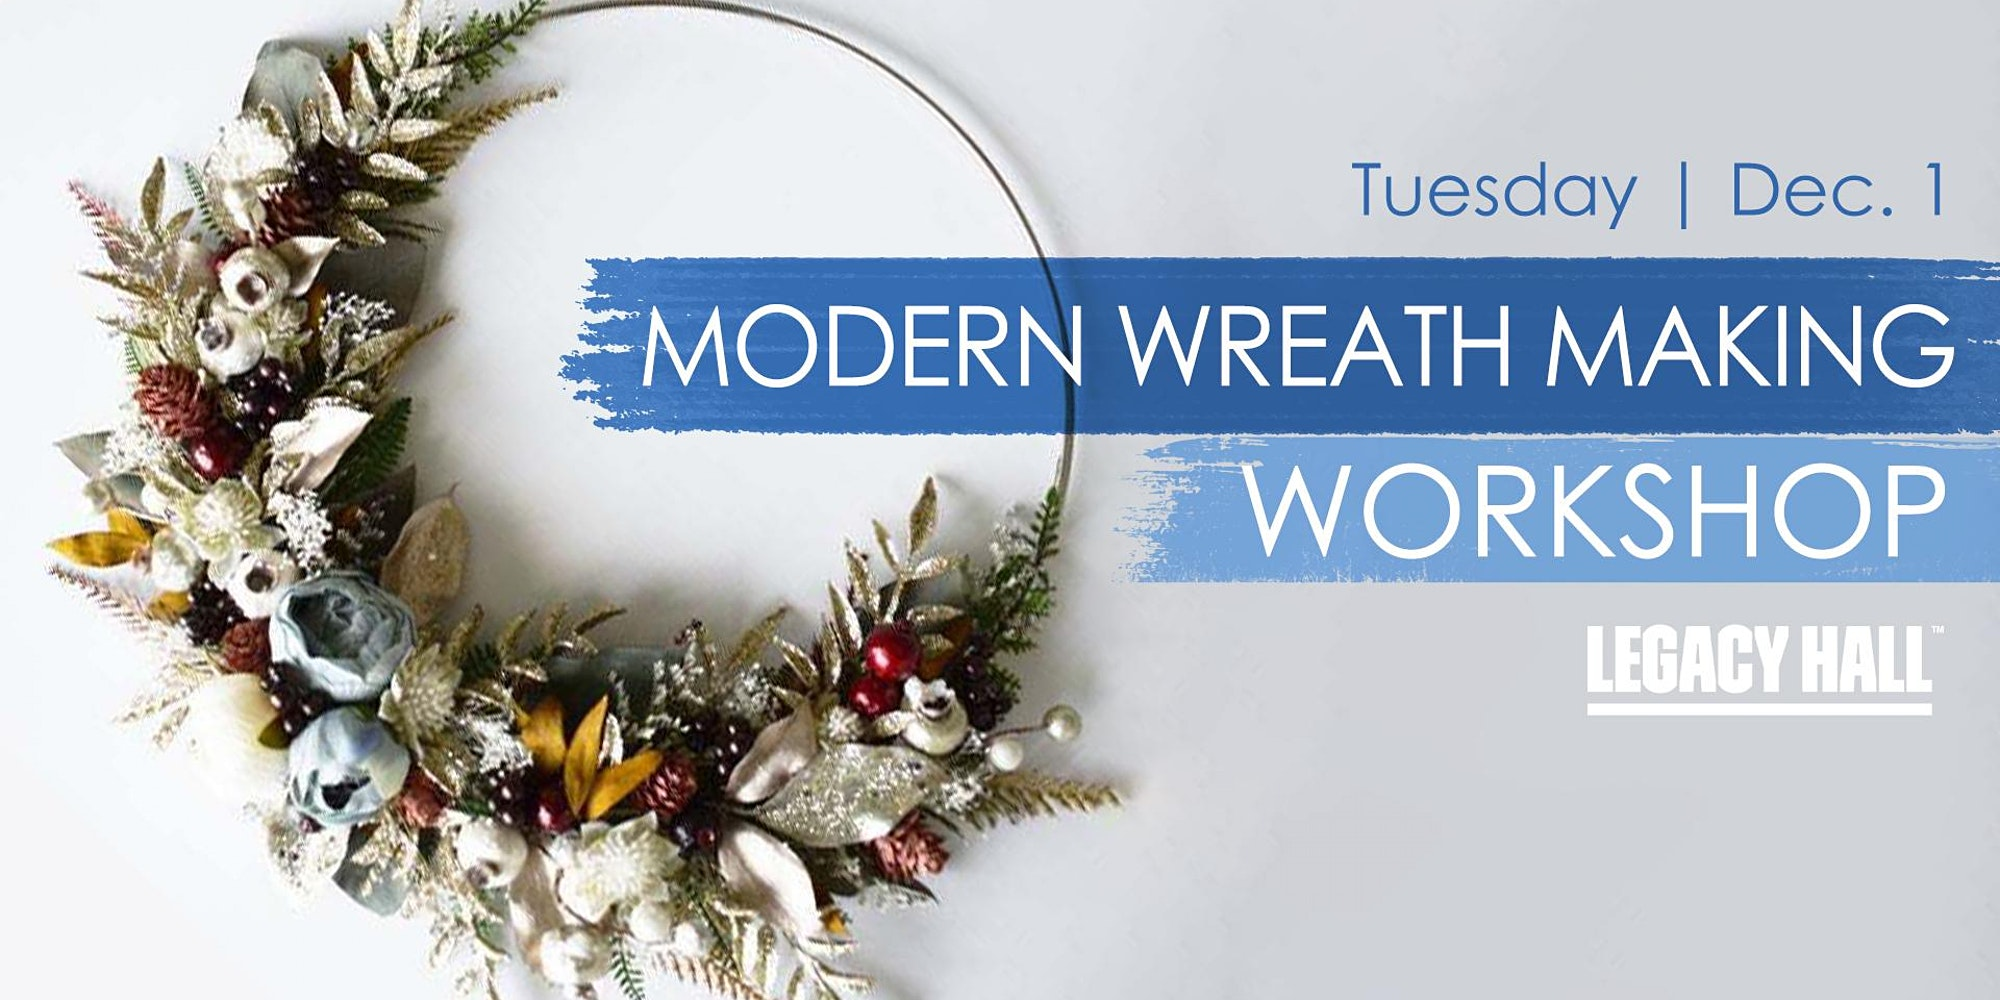 Modern Wreath Making Workshop at Legacy Hall - hero